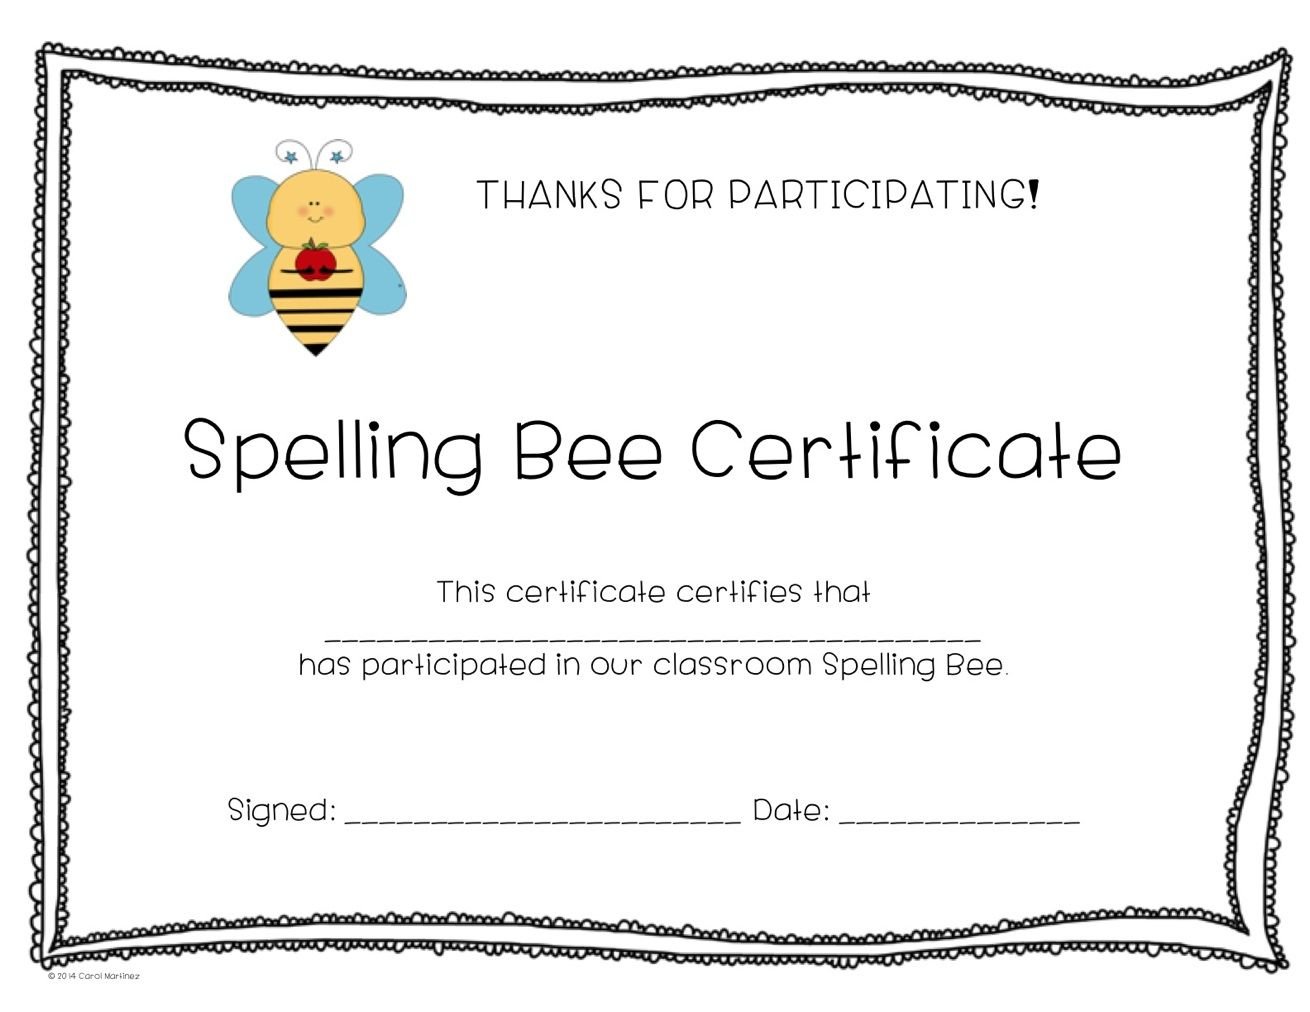 Spelling Bee Certificate {FREEBIE!} Enjoy! | ThirdGradeTroop.com ...